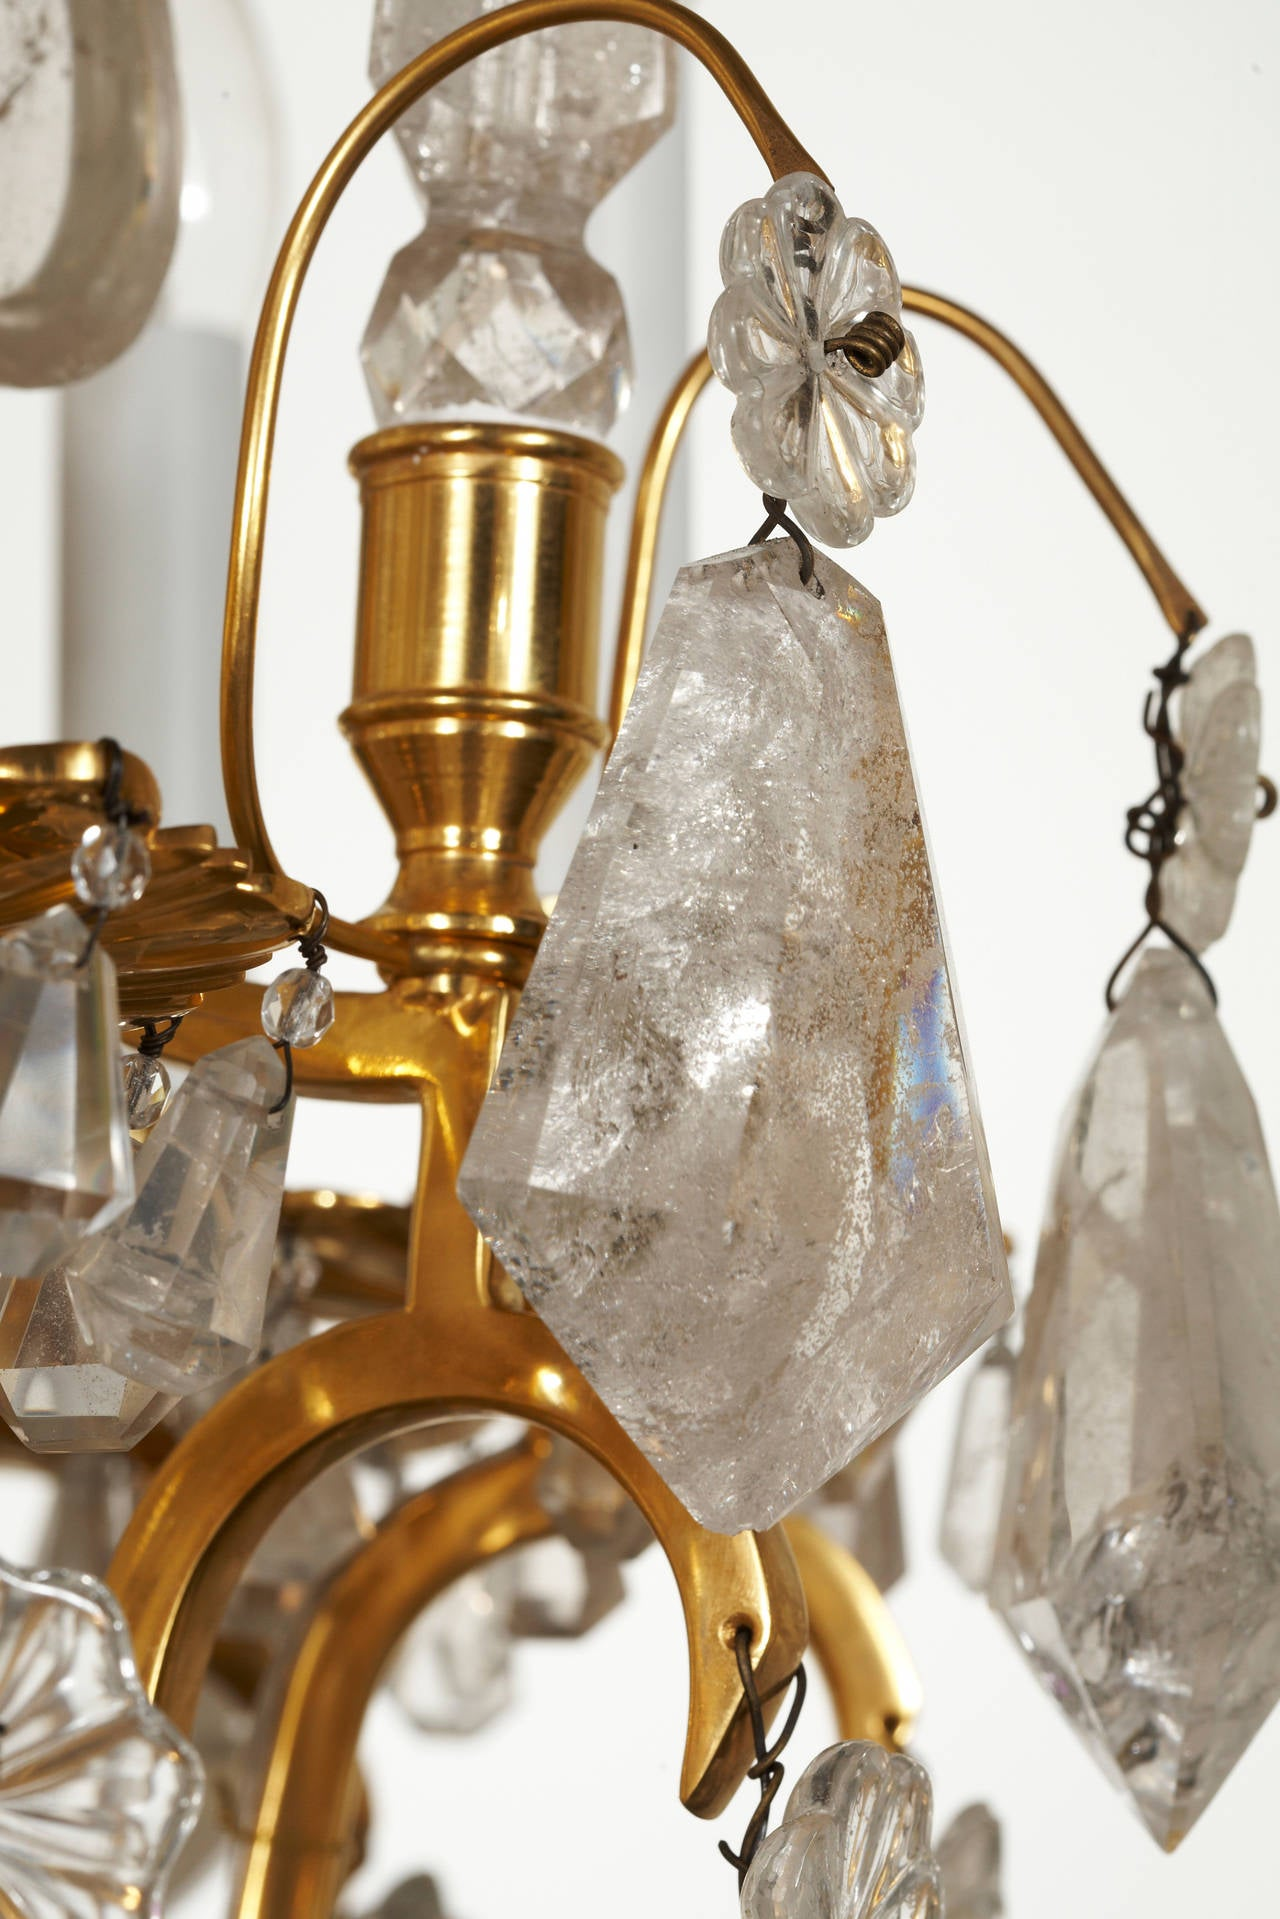 Unique french 18th century style rock crystal chandeliers for Unique chandeliers for sale